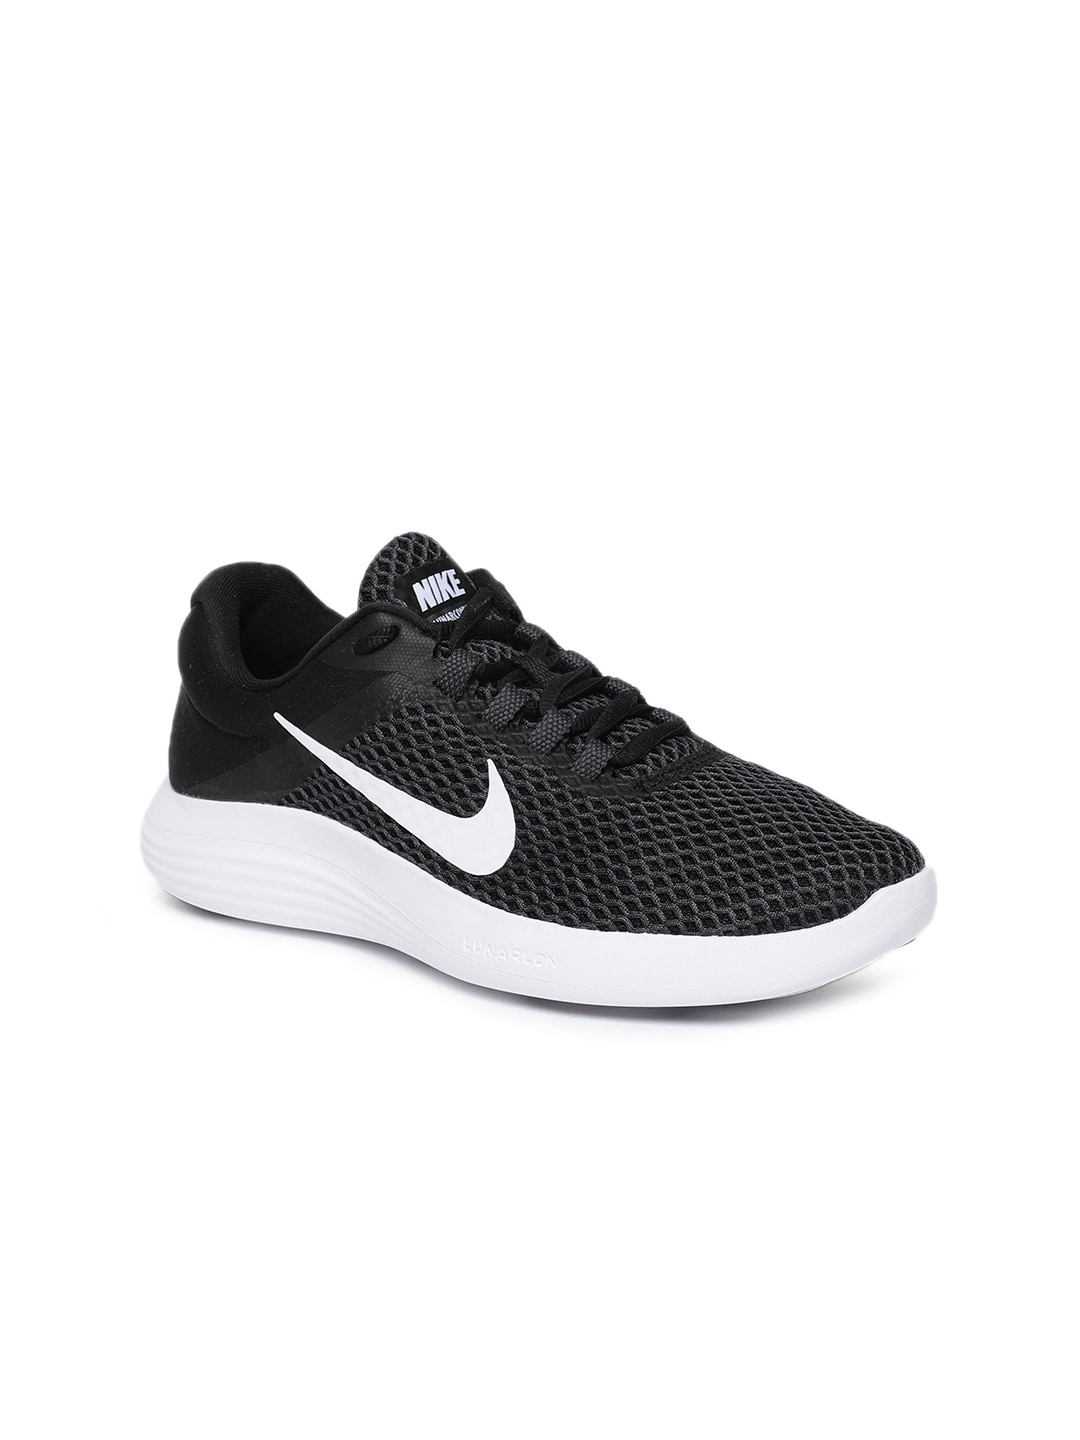 timeless design a207a a5f8c Nike Shoes - Buy Nike Shoes for Men, Women   Kids Online   Myntra